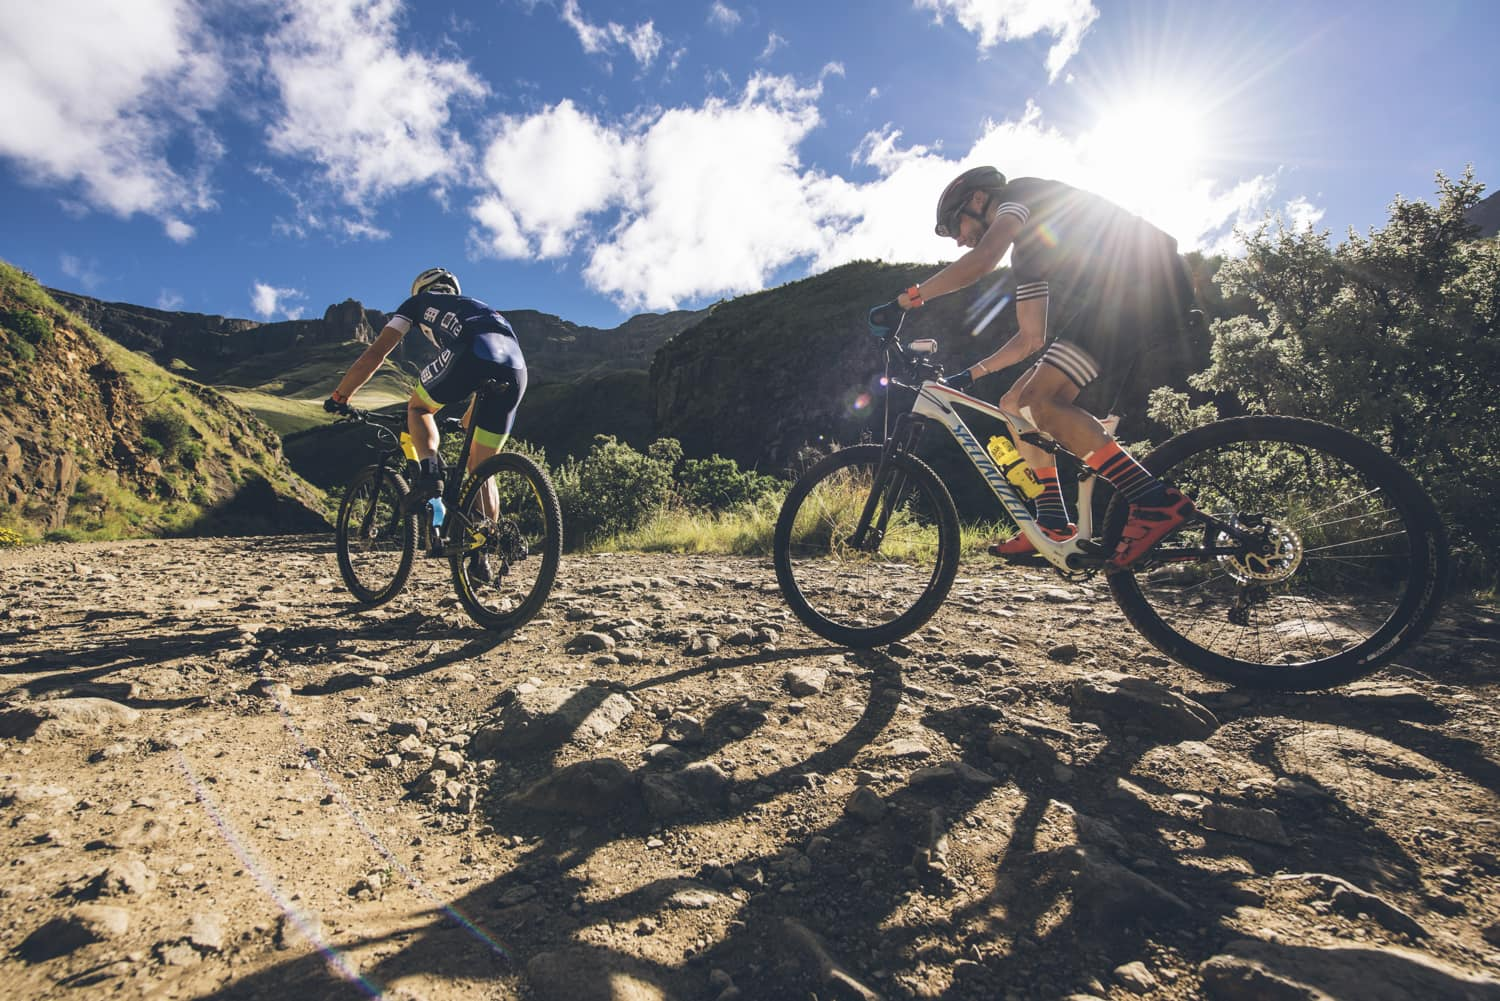 sani-pass-desmond-louw-bicycling-magazine-wowrides-0056